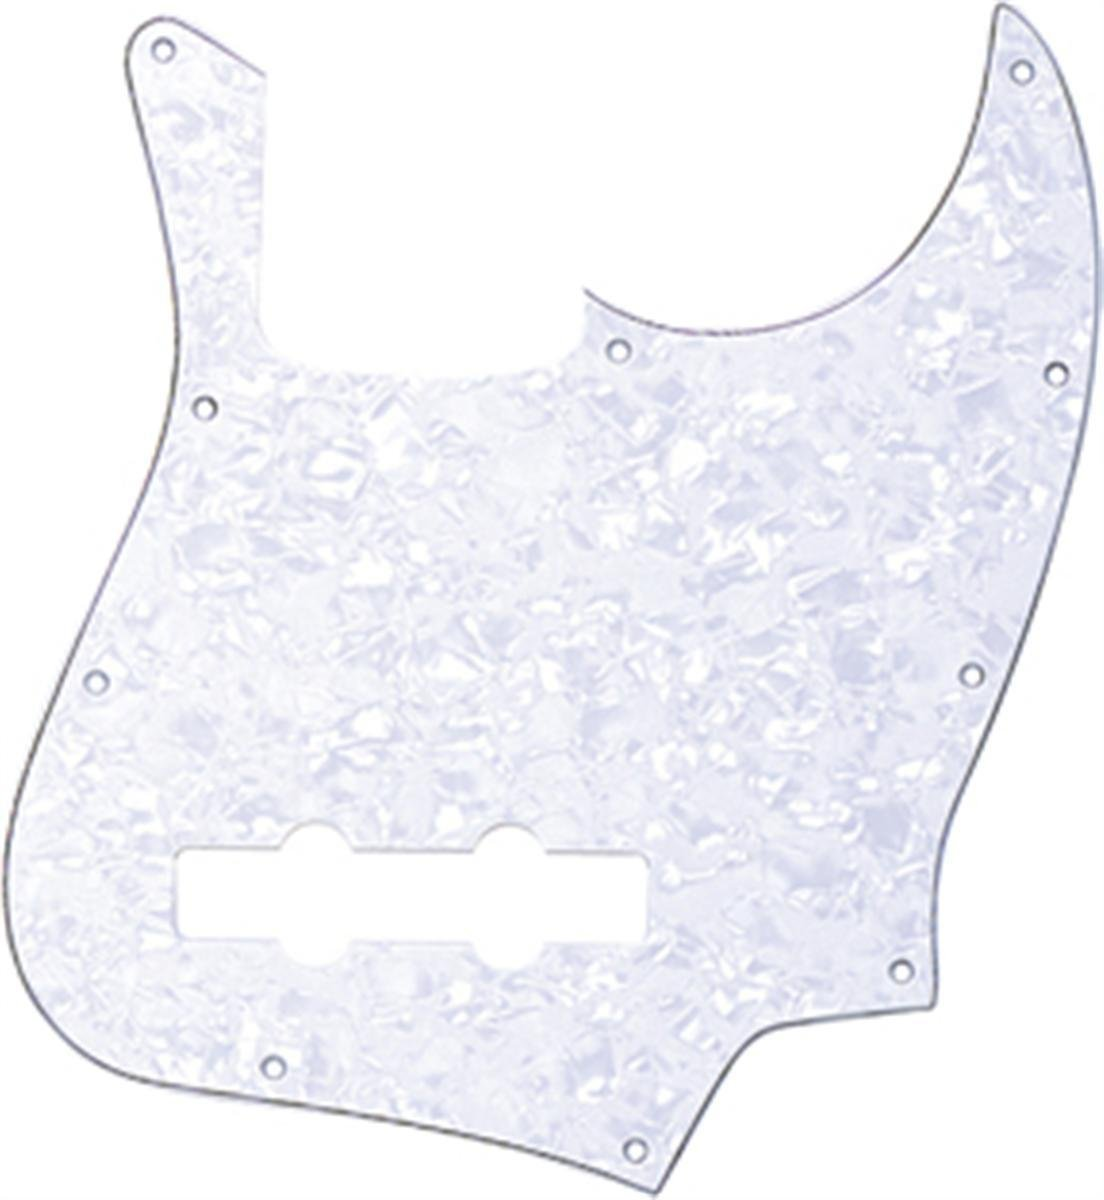 Jazz bass American standard pickguard 4ply pearl white fits fender new